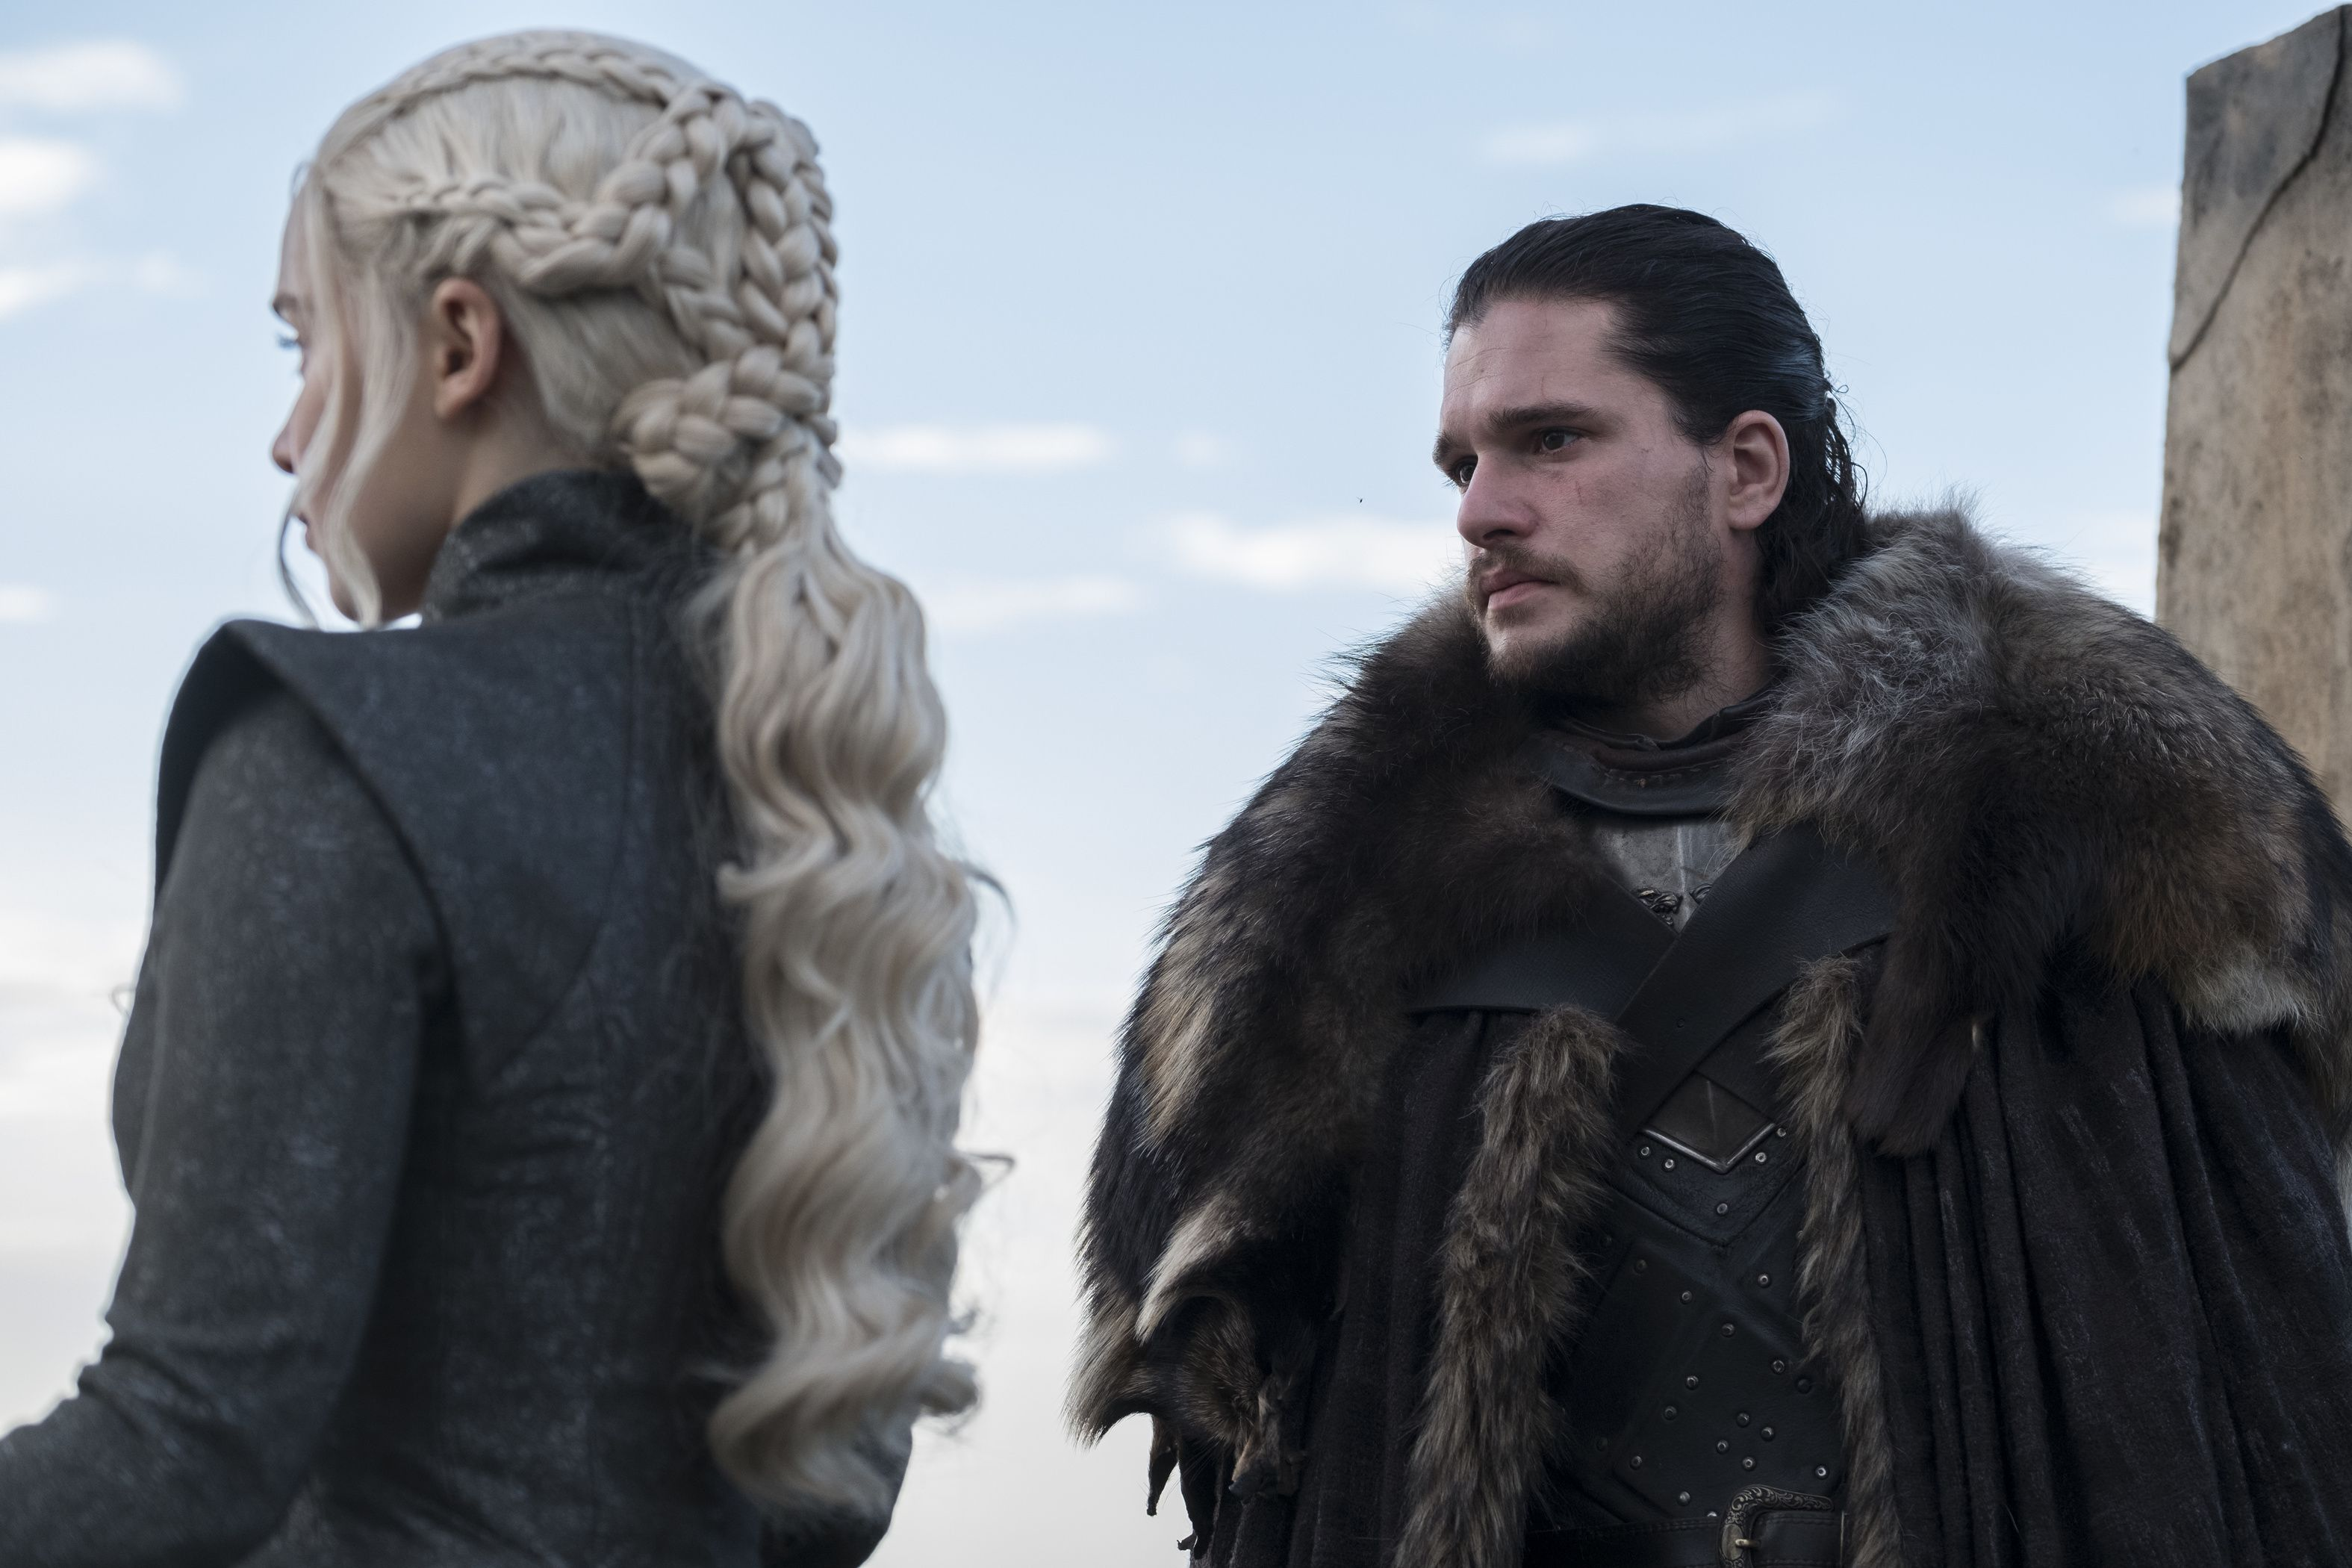 Jon snow and daenerys hookup in real life